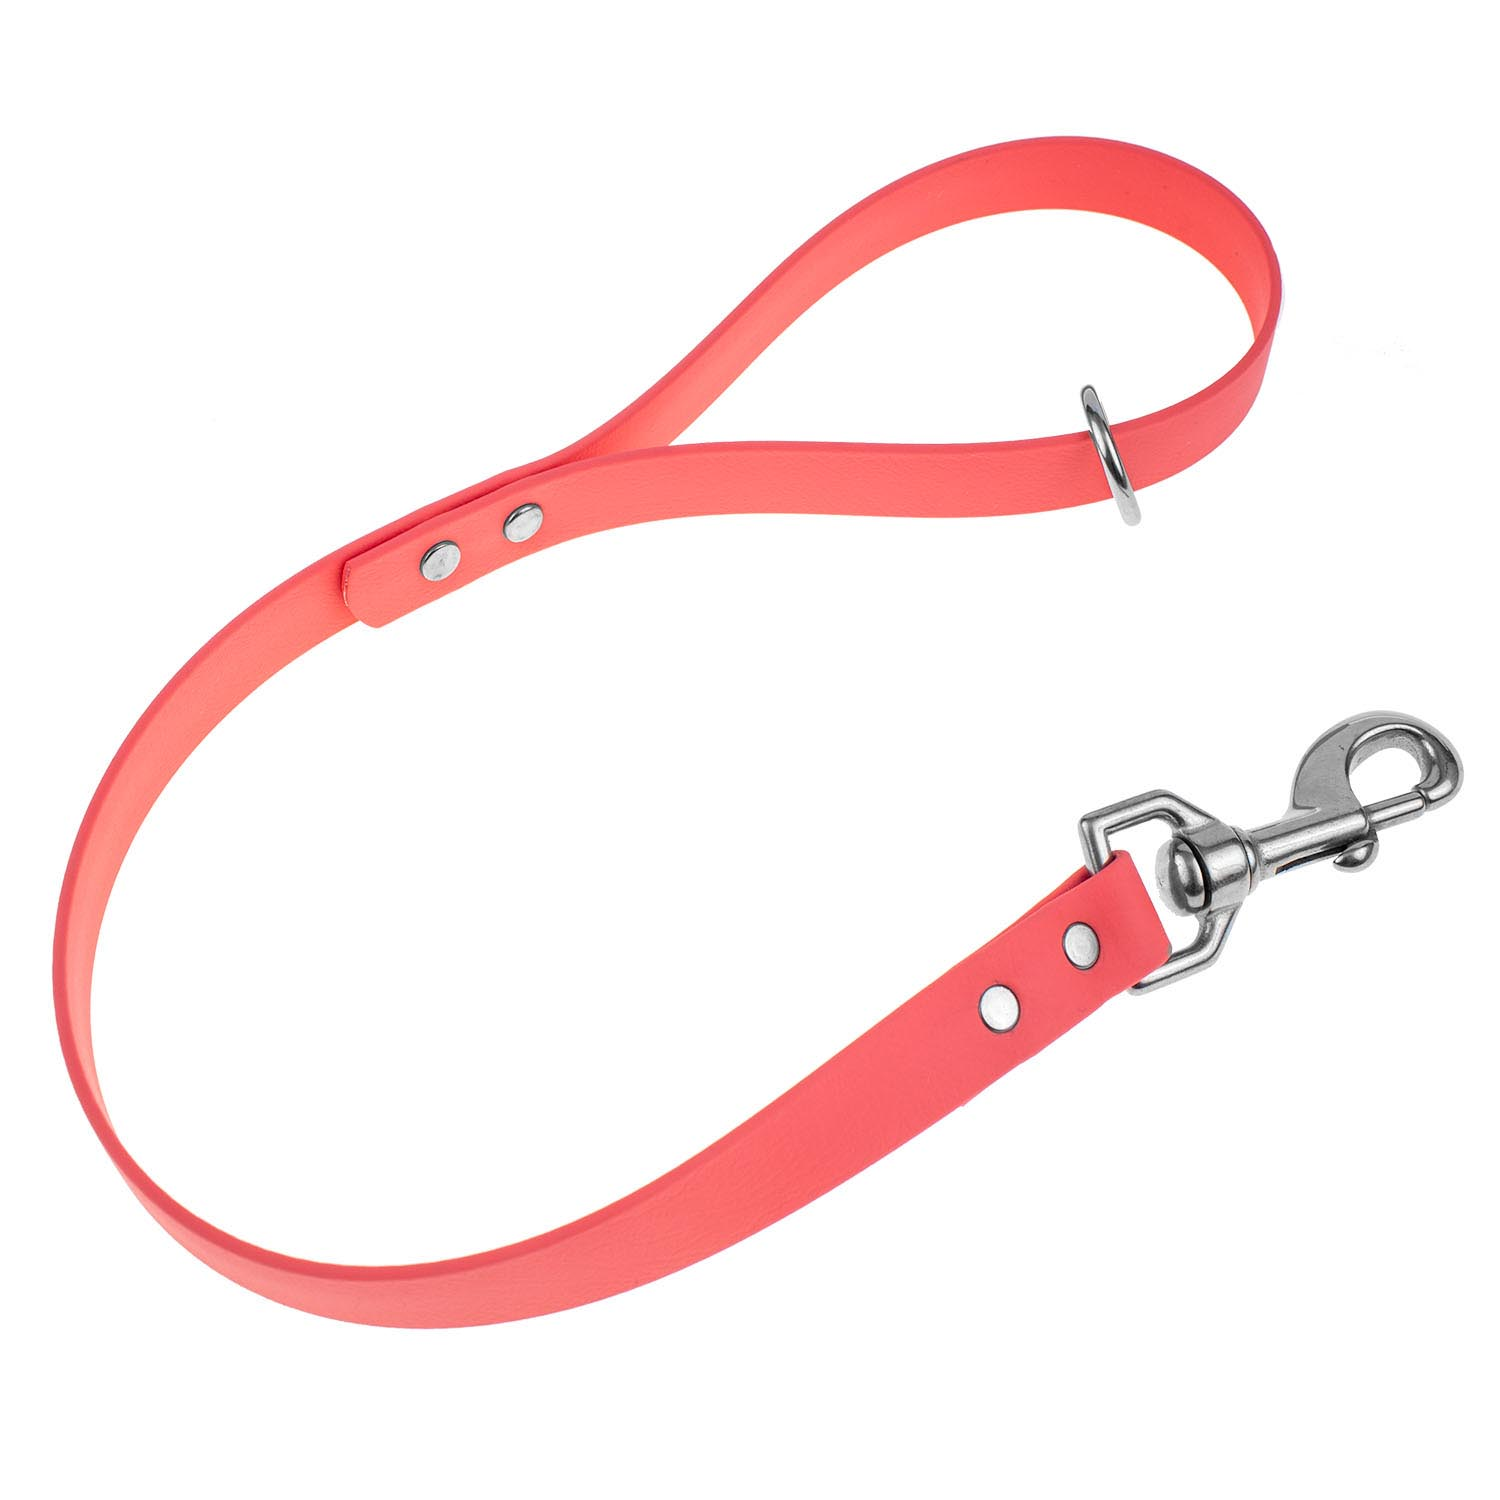 Waterproof traffic leash - coral